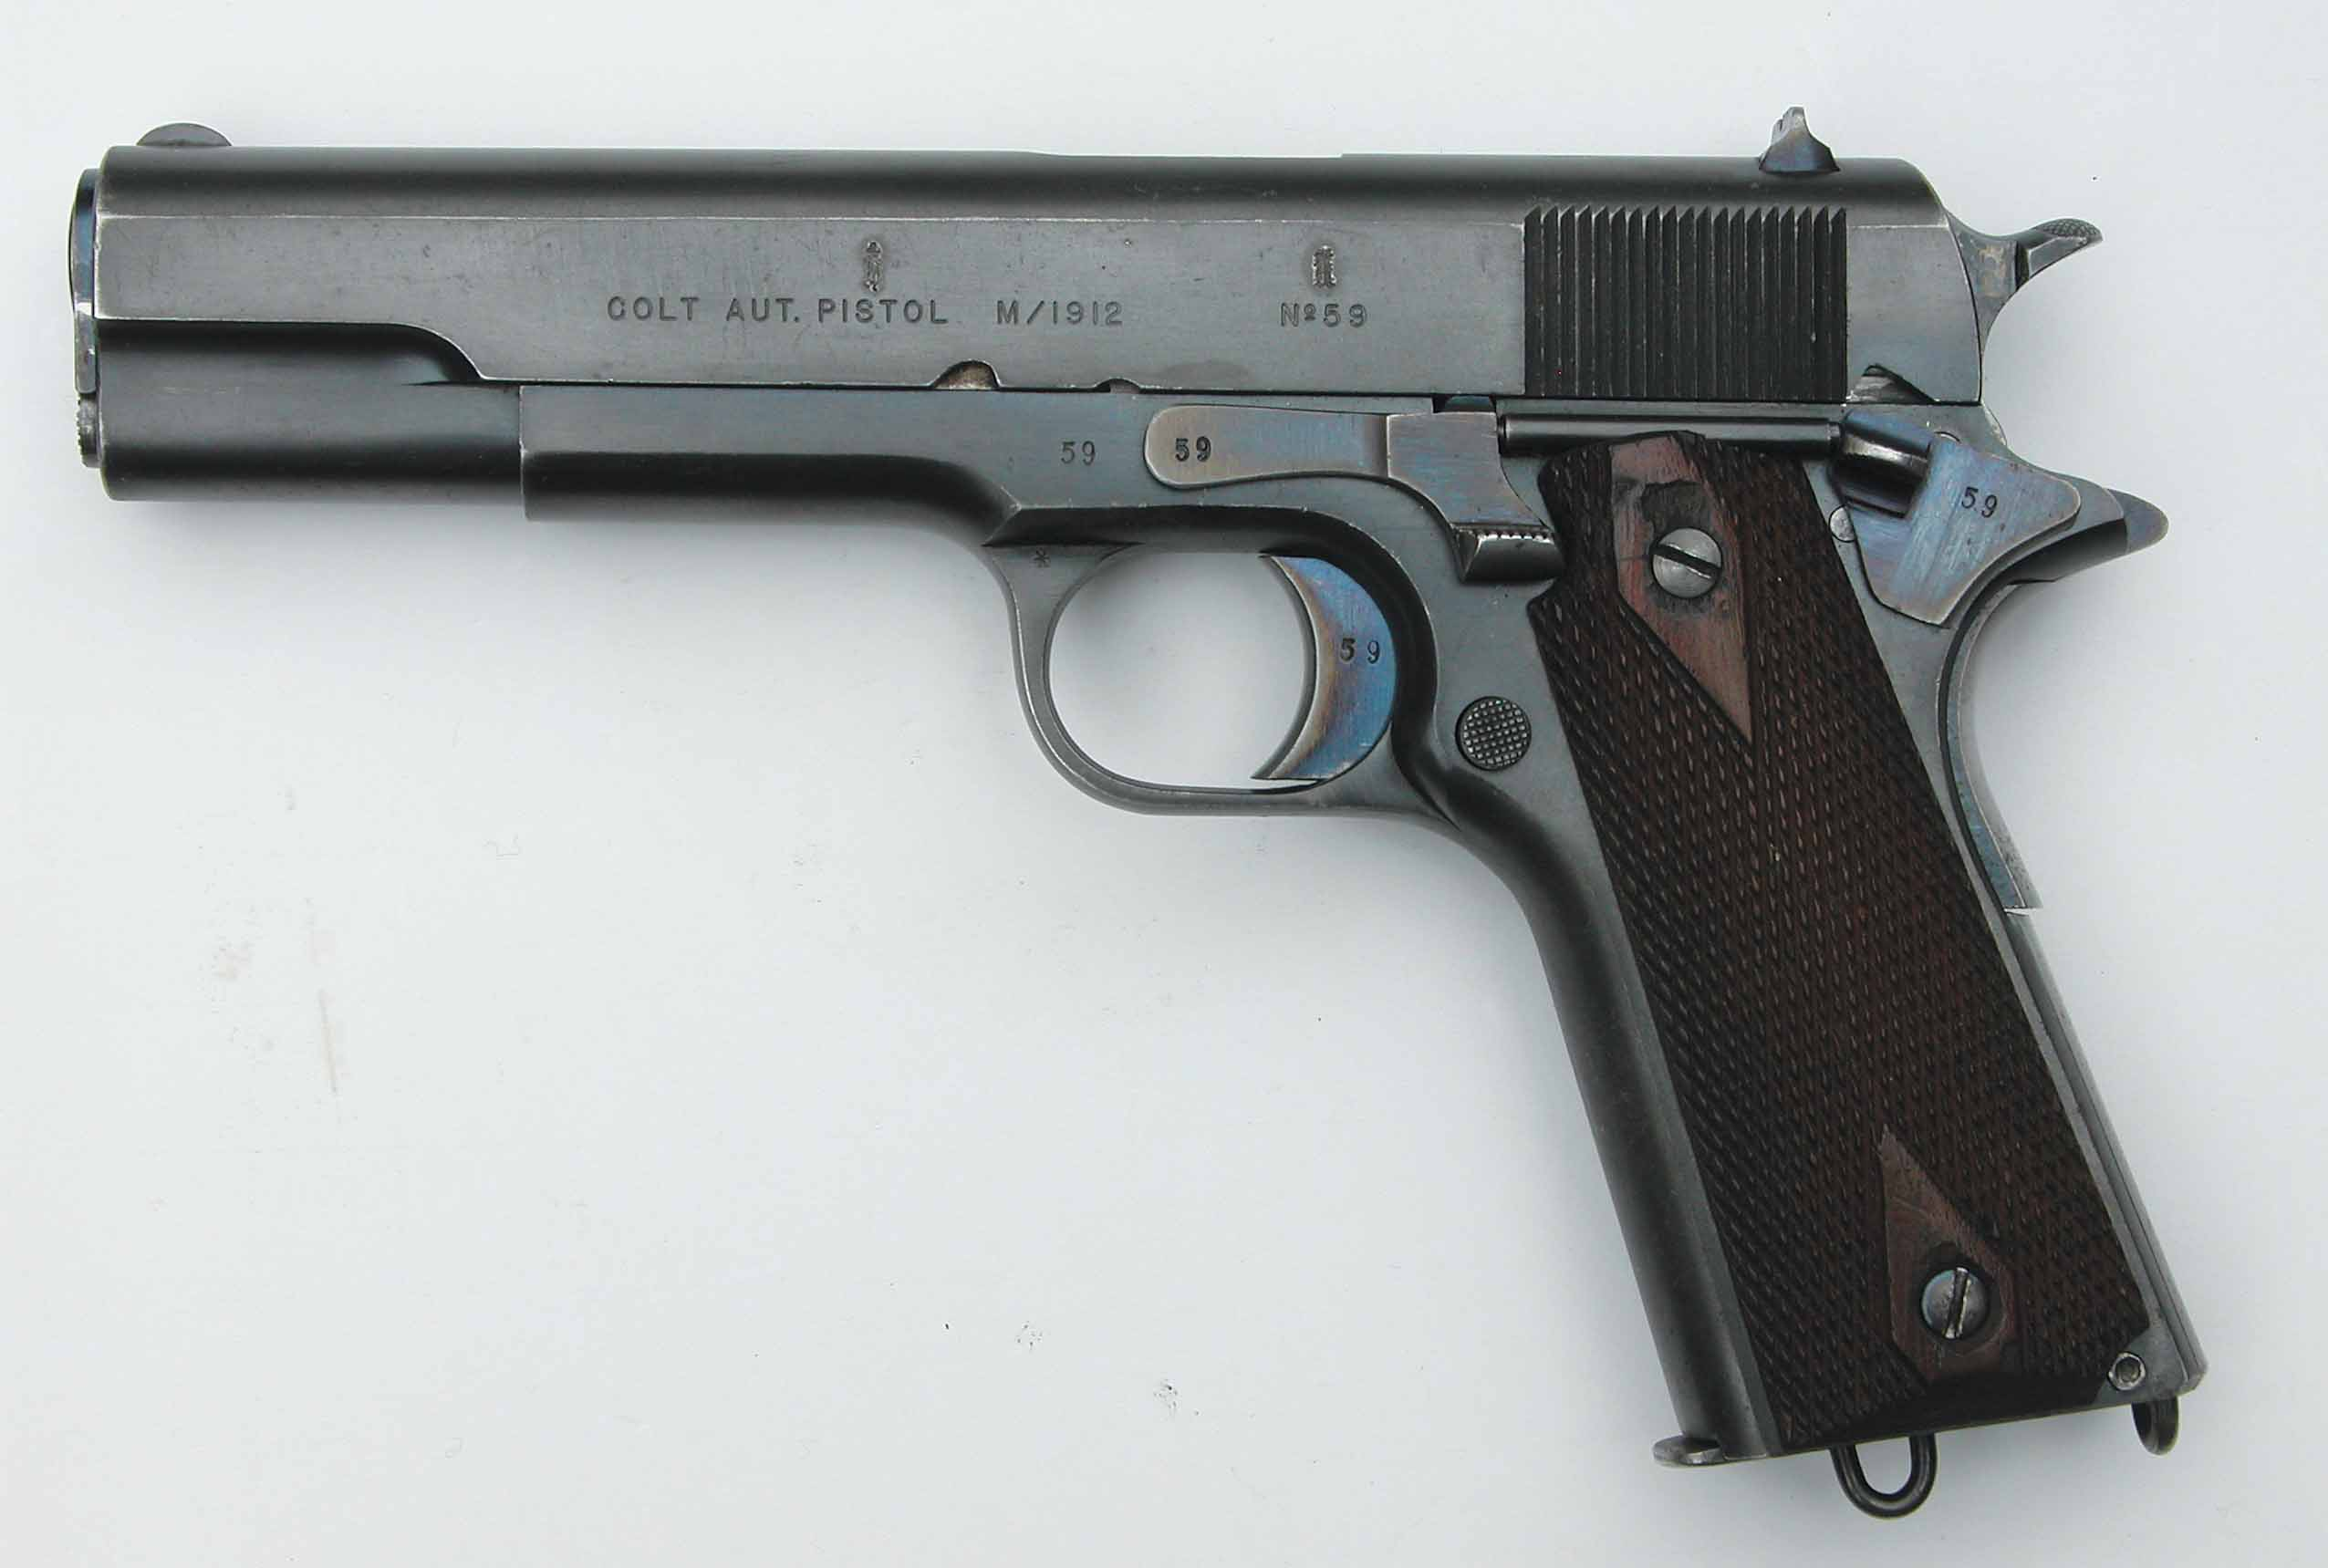 Dating Colt 1911 By Serial Numbers